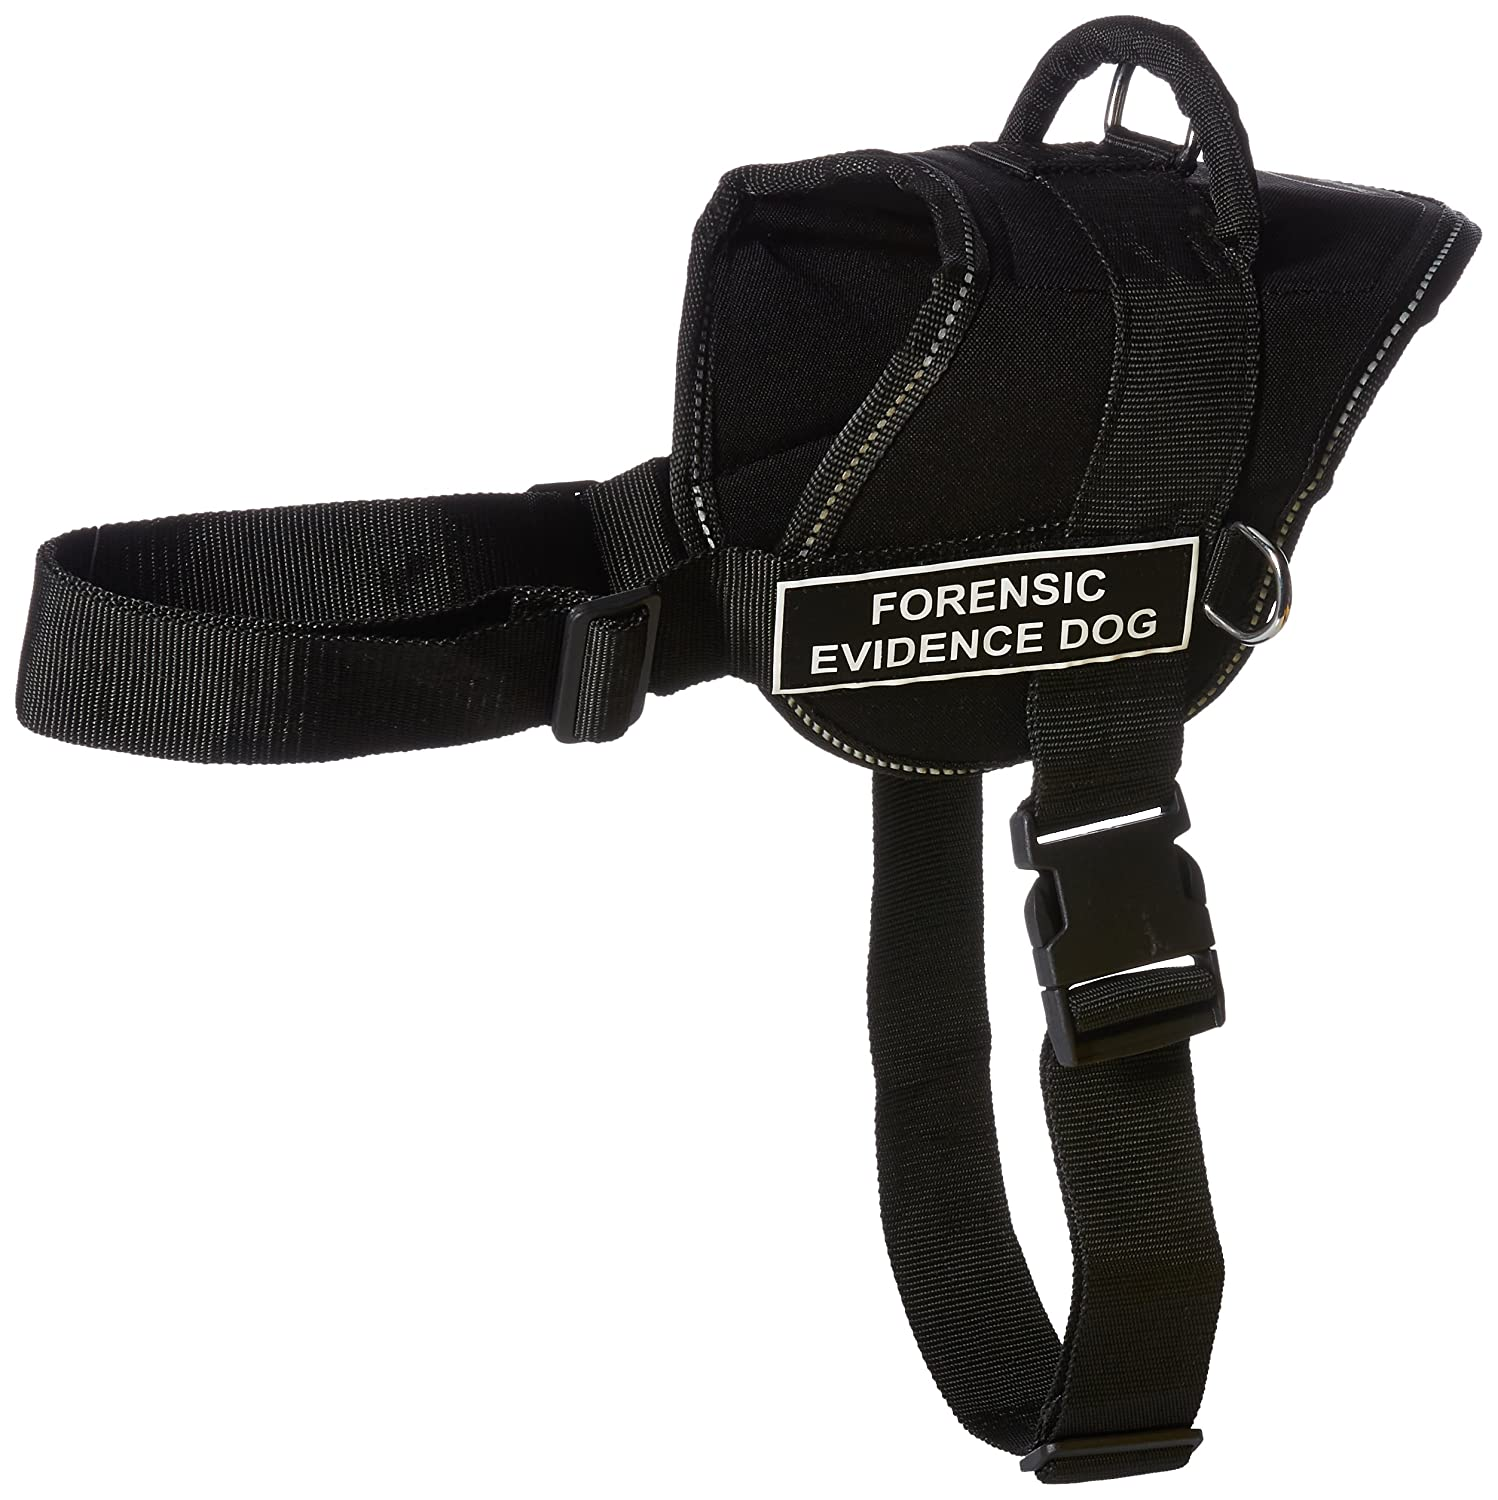 Dean & Tyler Fun Works Forensic Evidence Dog Harness, X-Large, Fits Girth Size  34-Inch to 47-Inch, Black with Reflective Trim